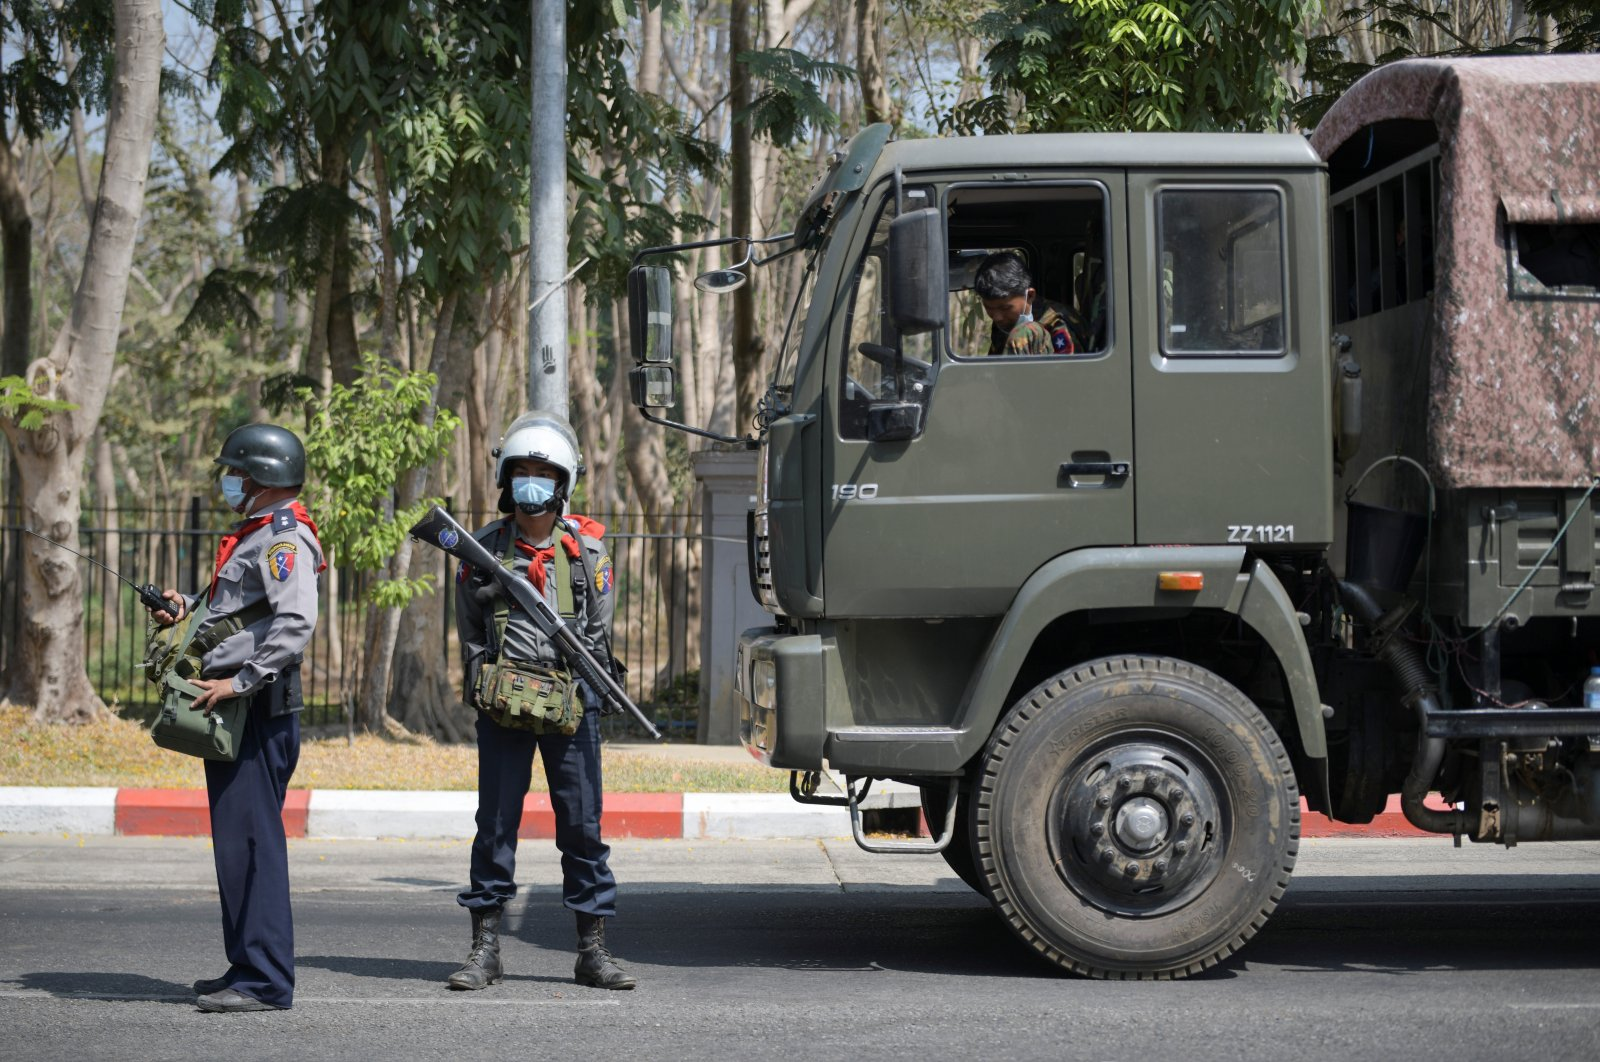 Riot police stand guard during a rally against the military coup at the University of Yangon, in Yangon, Myanmar, Feb. 25, 2021. (Reuters Photo)